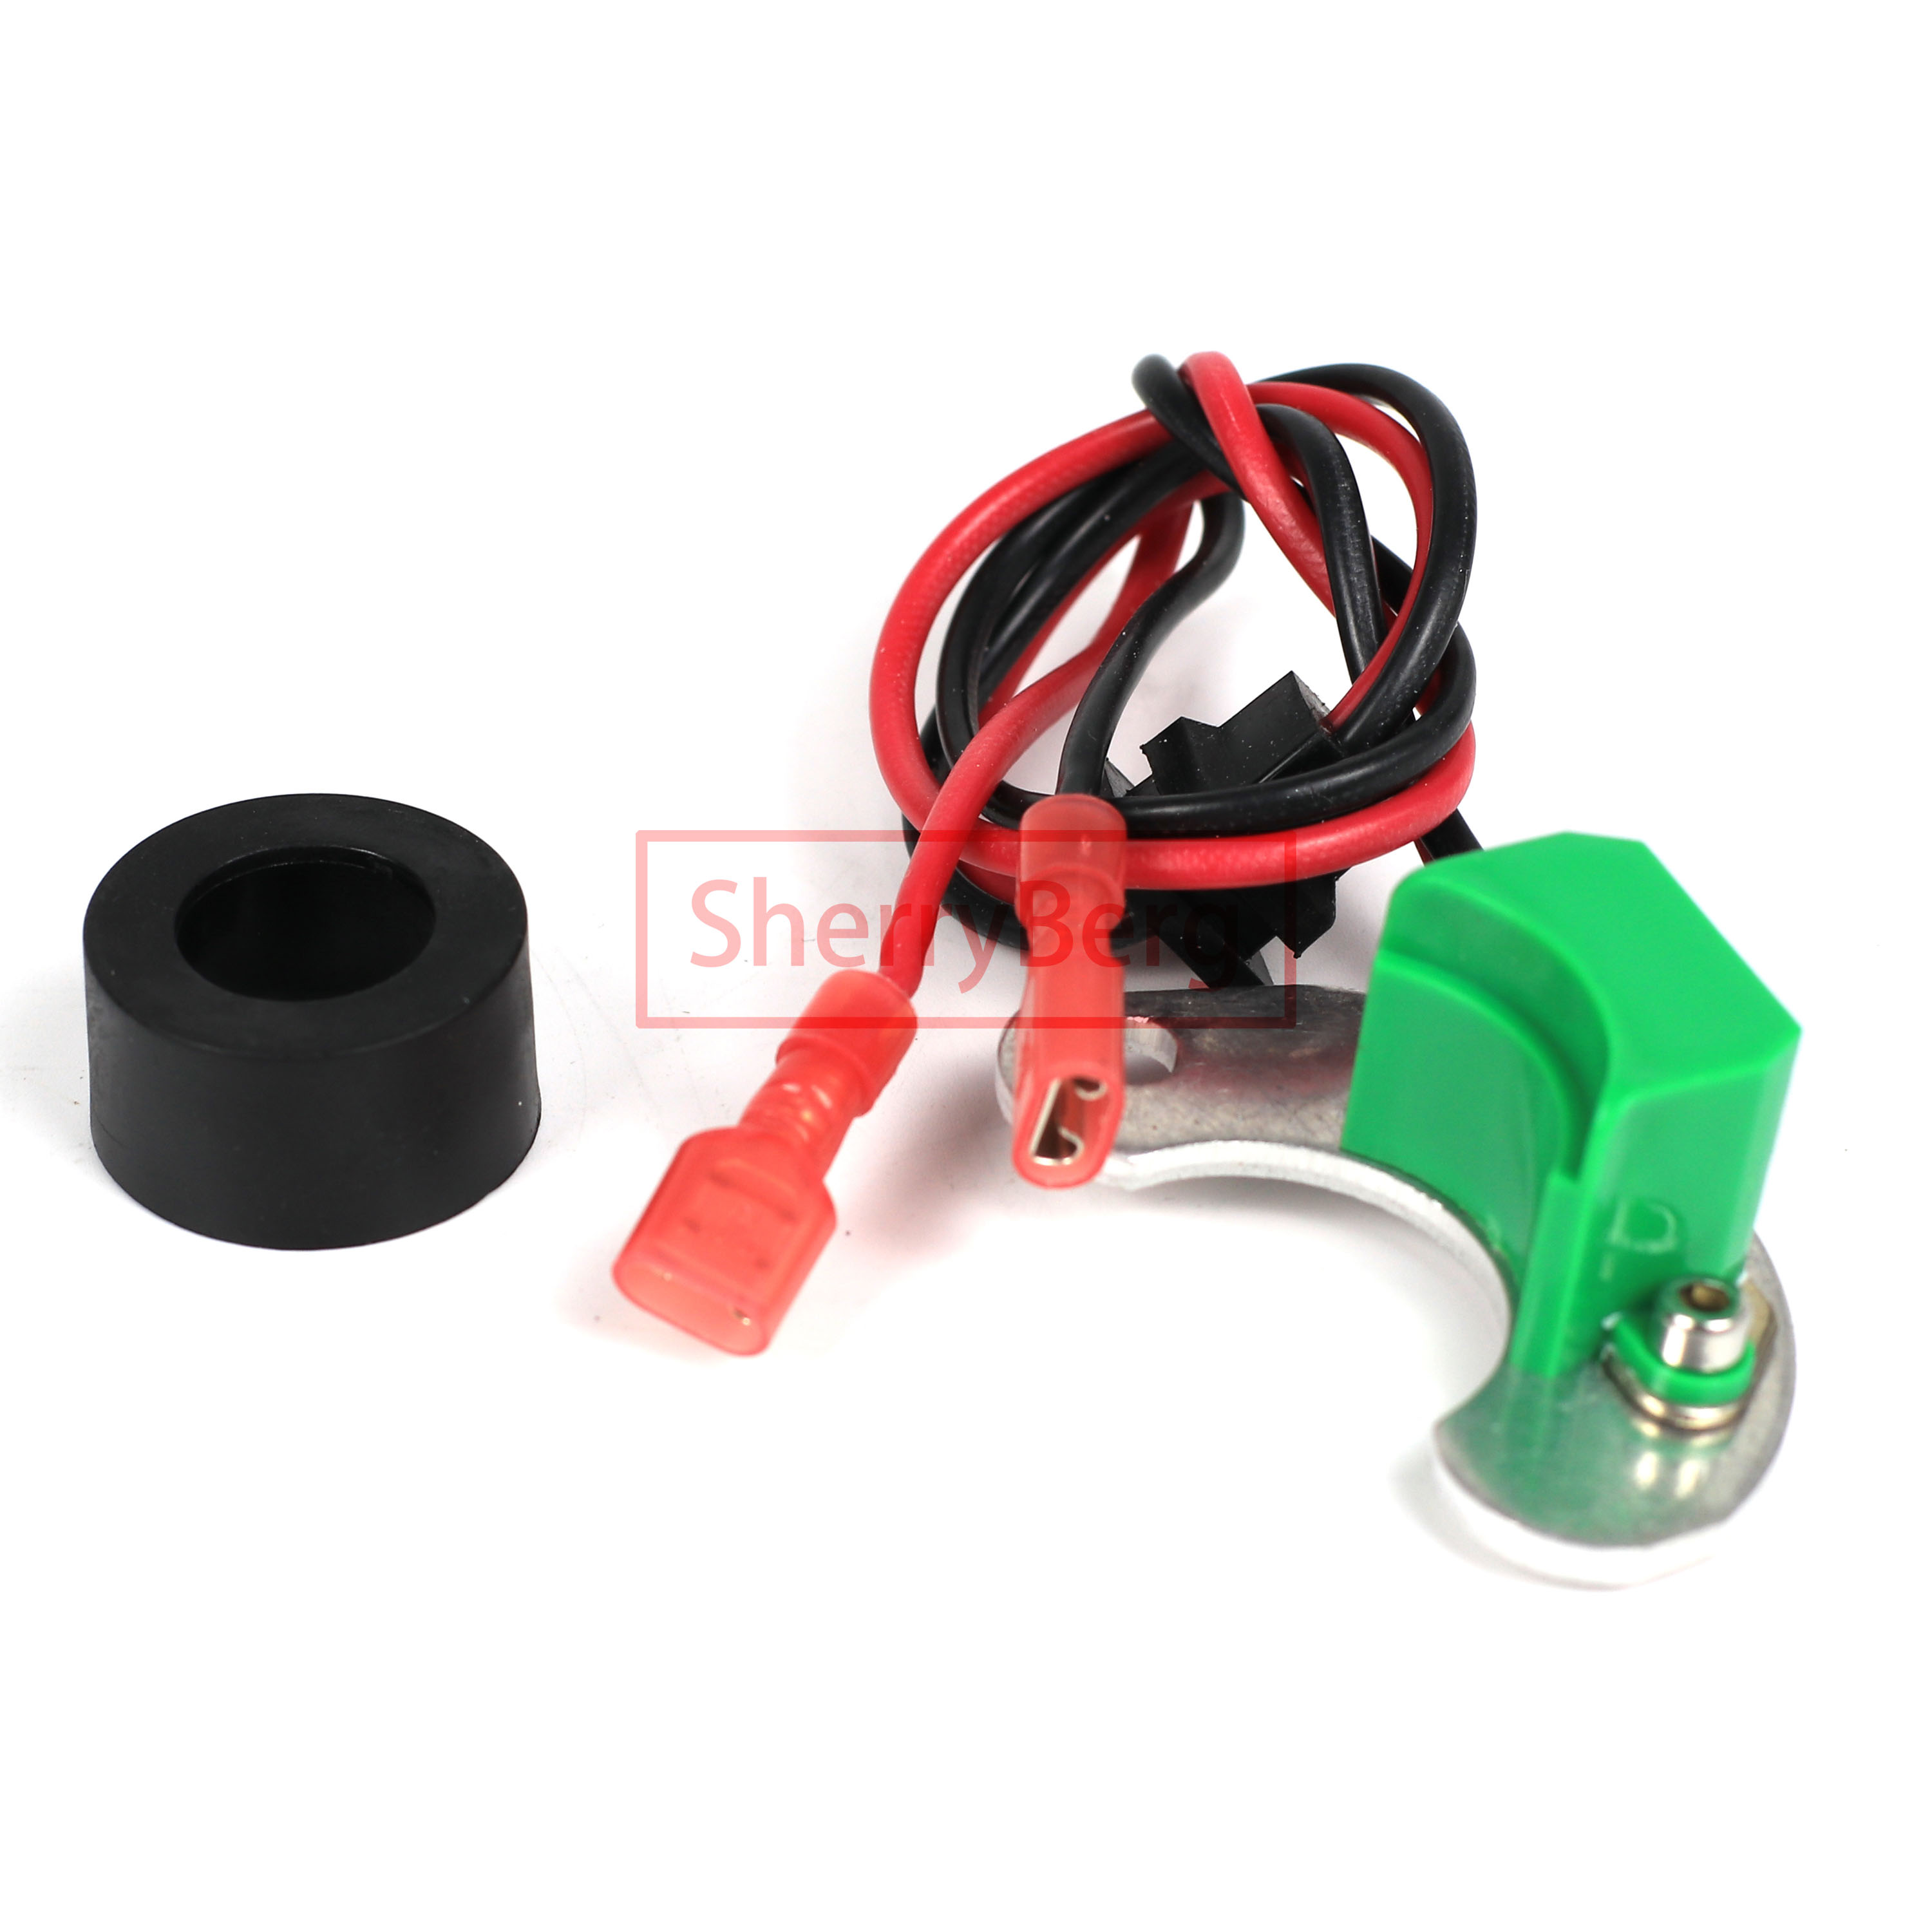 SherryBerg Electronic IGNITION KIT fit for Bosch JFU4 009 Distributors for VW Penta Porsche Audi for distributor without vacuum